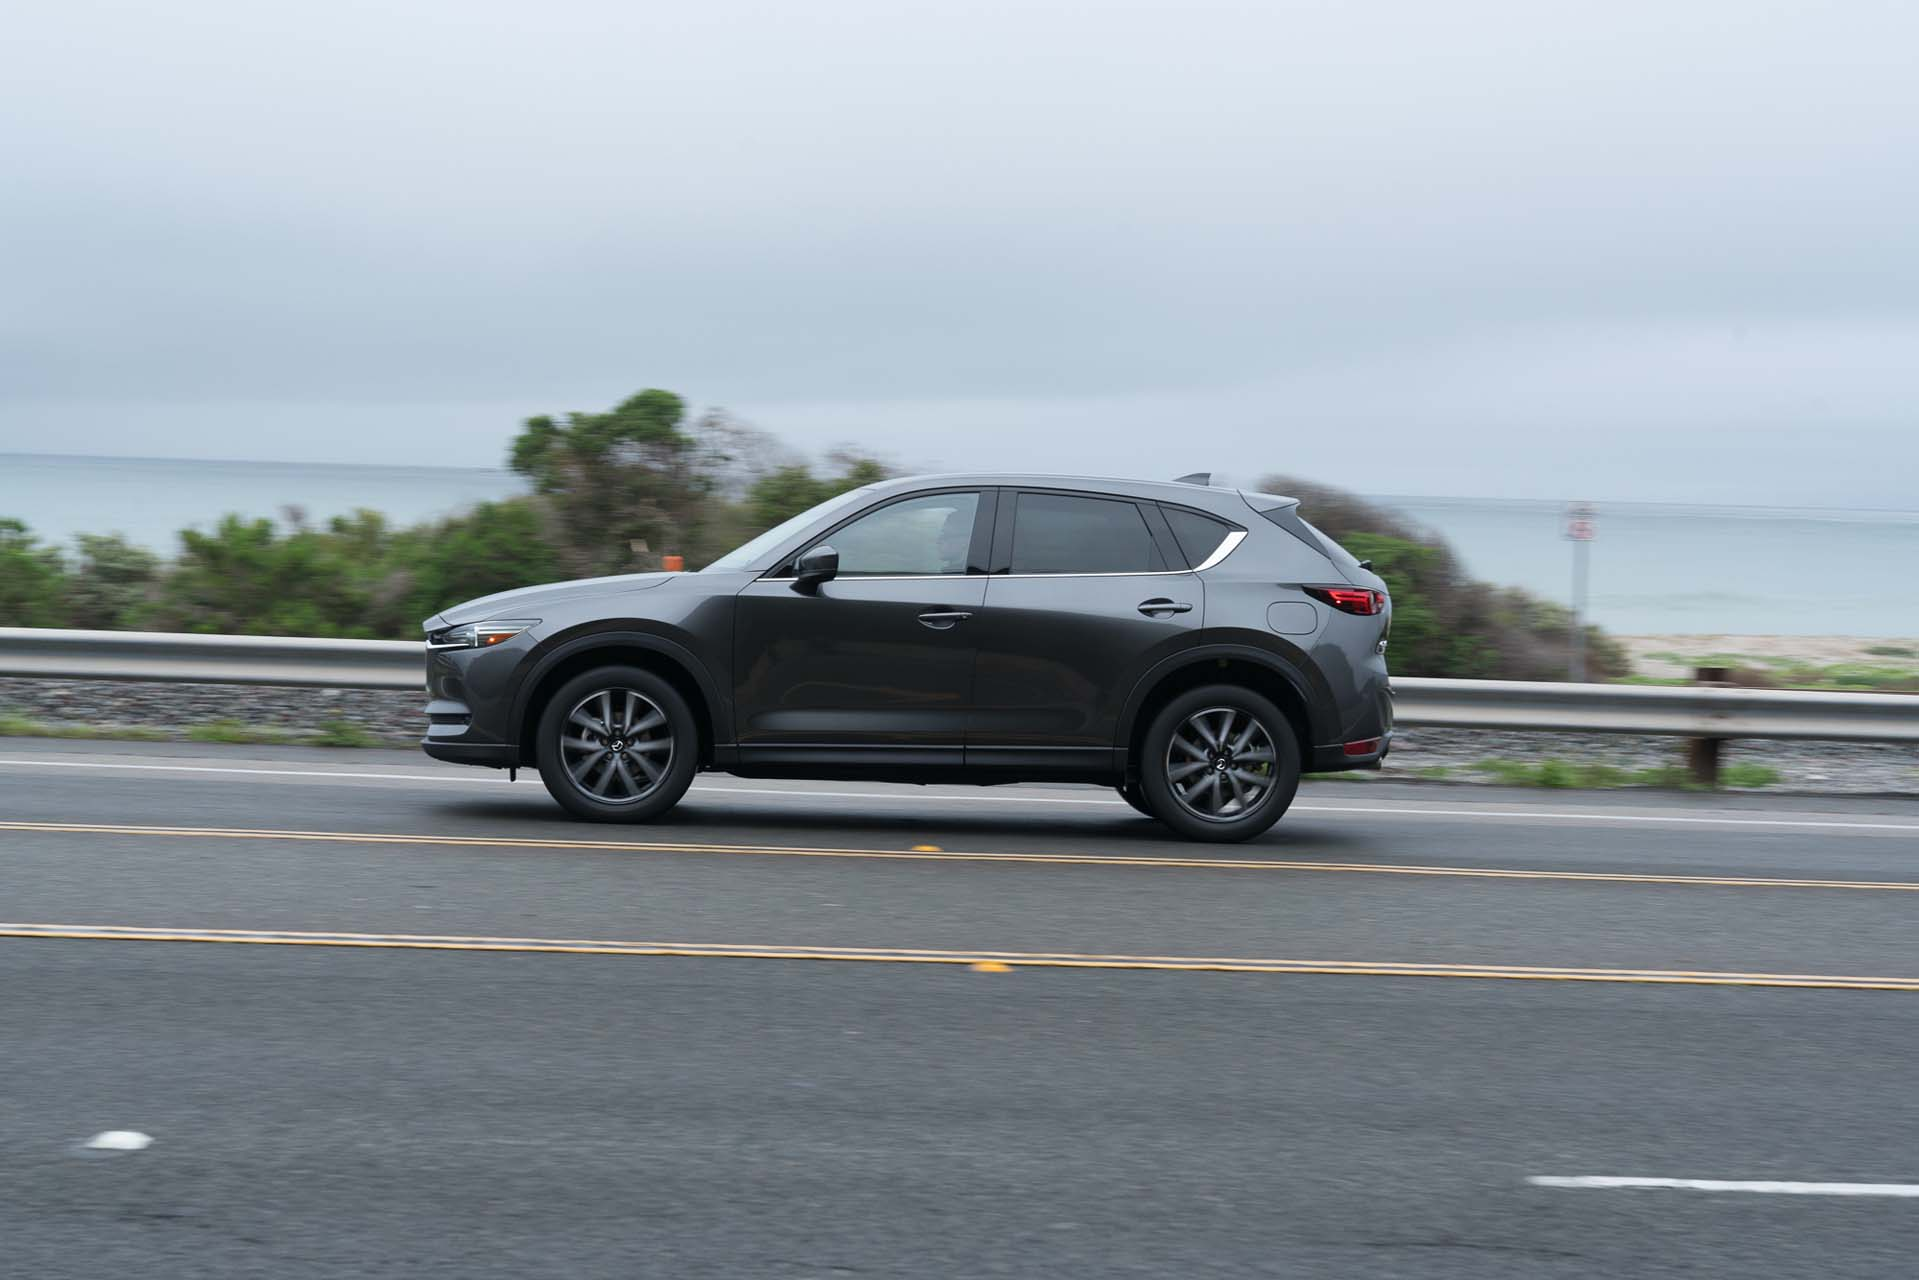 2017 Mazda Cx 5 Video Review